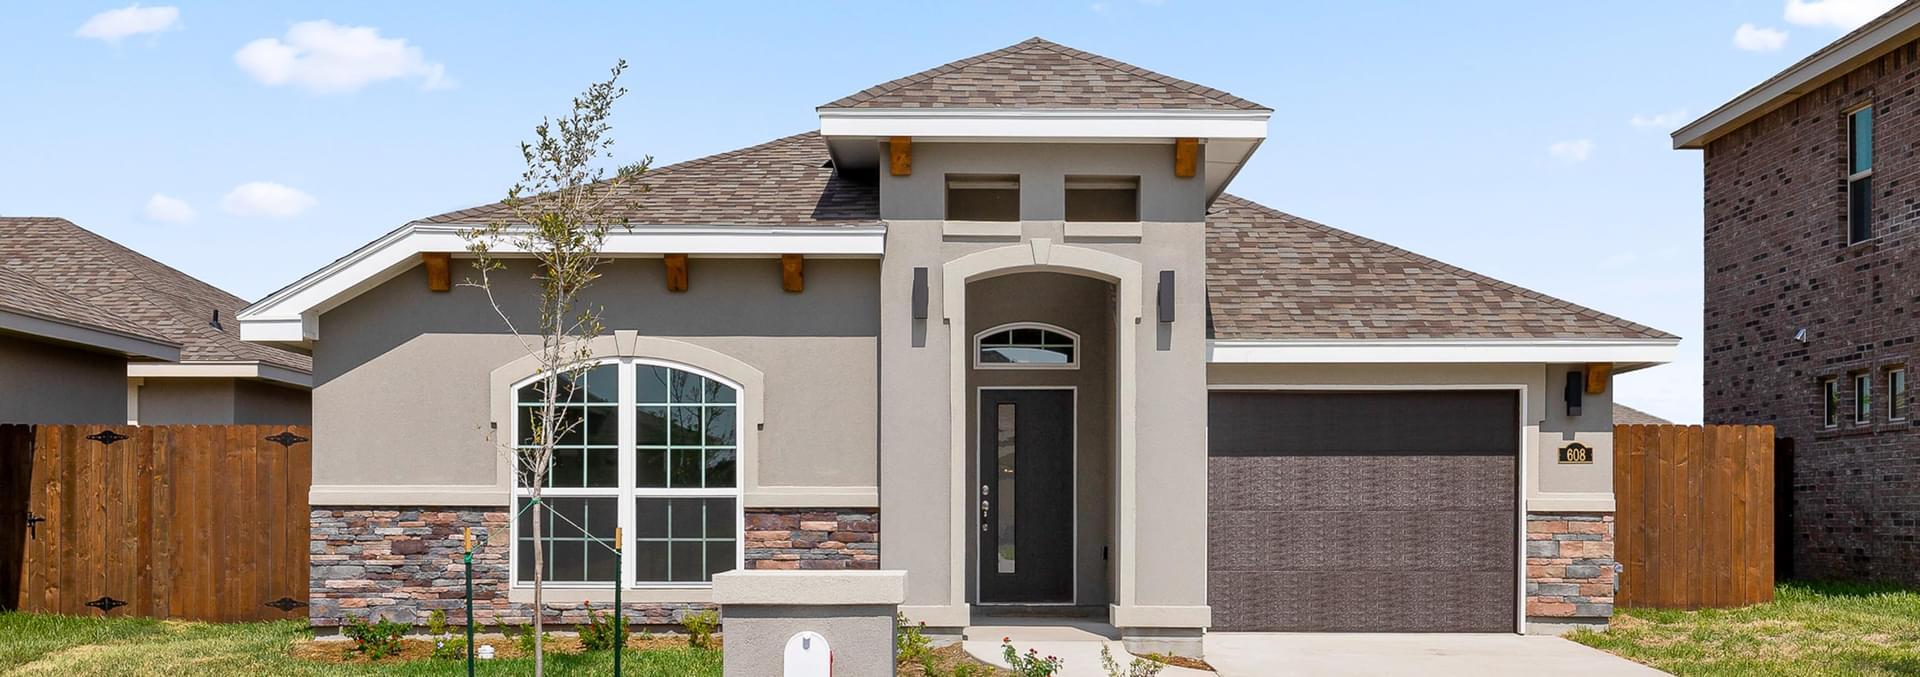 Del Oro at Bentsen Palm New Homes in Mission , TX